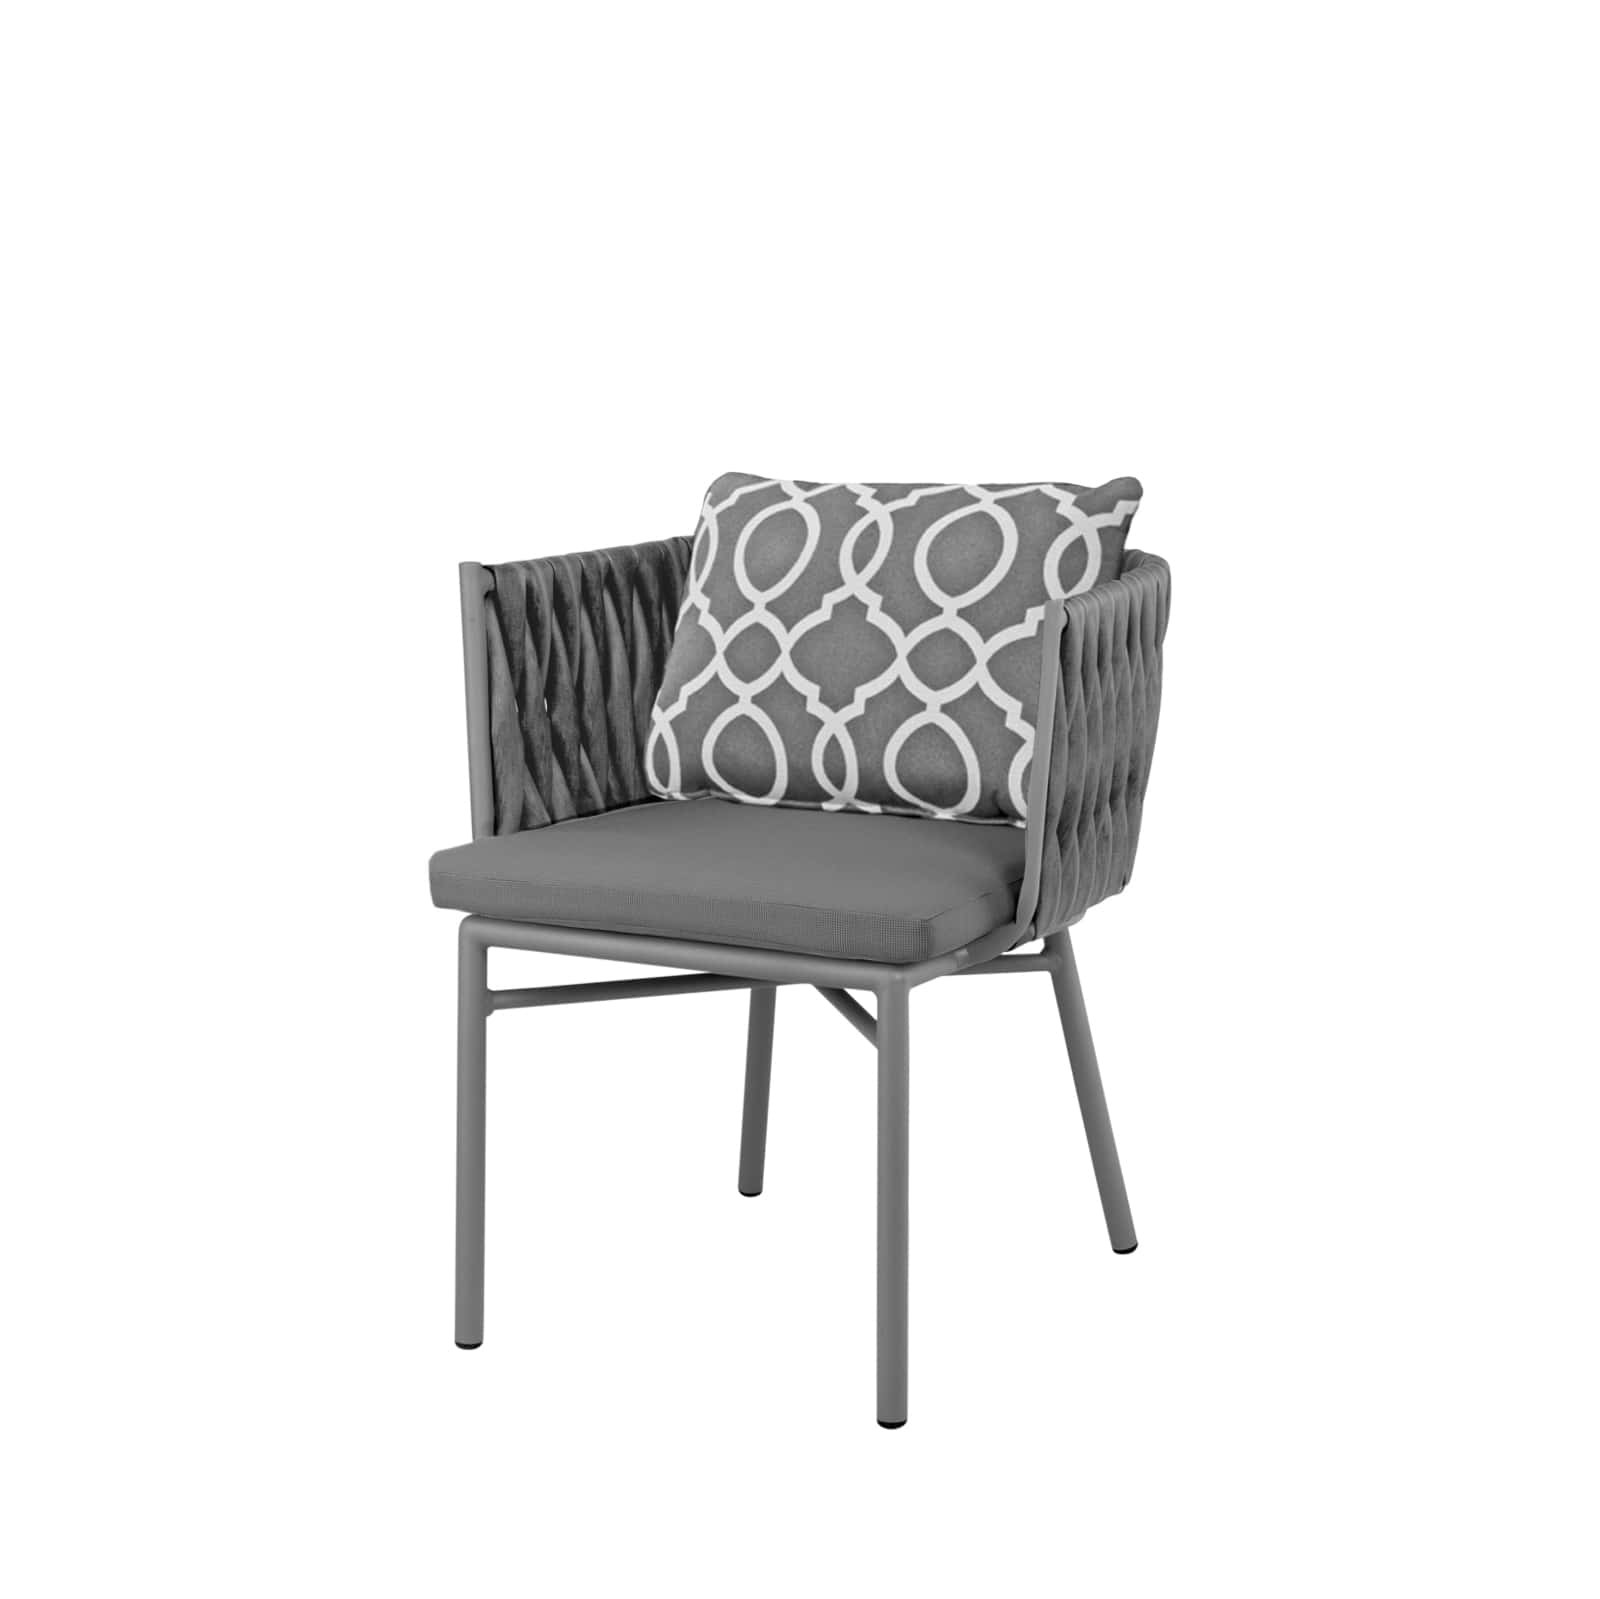 Source Outdoor Aria Wicker Dining Chair Kessler Silver With Gray Weave